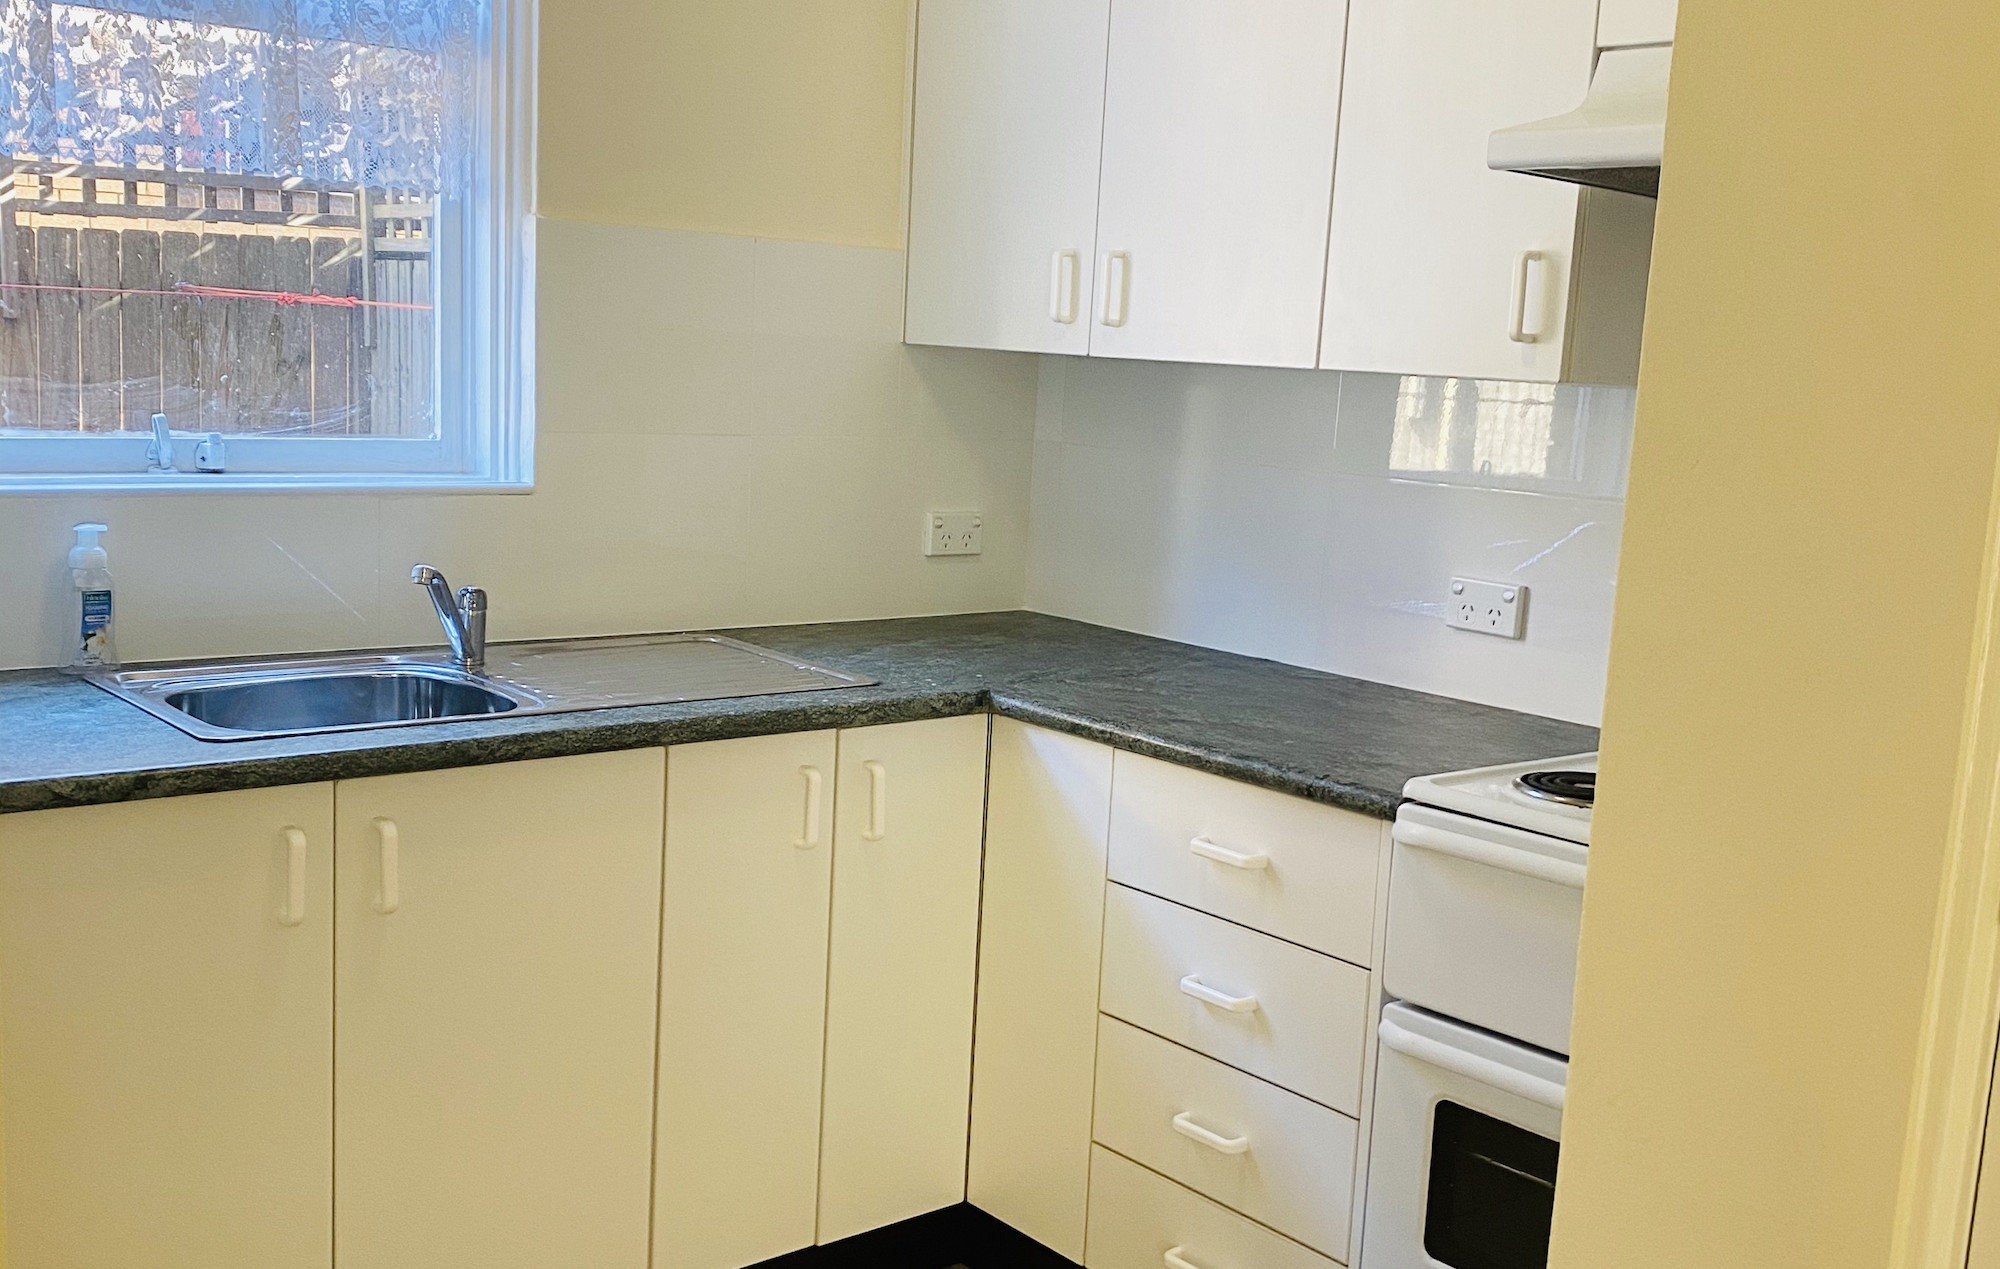 Unit of Rent in Auburn : Close to station